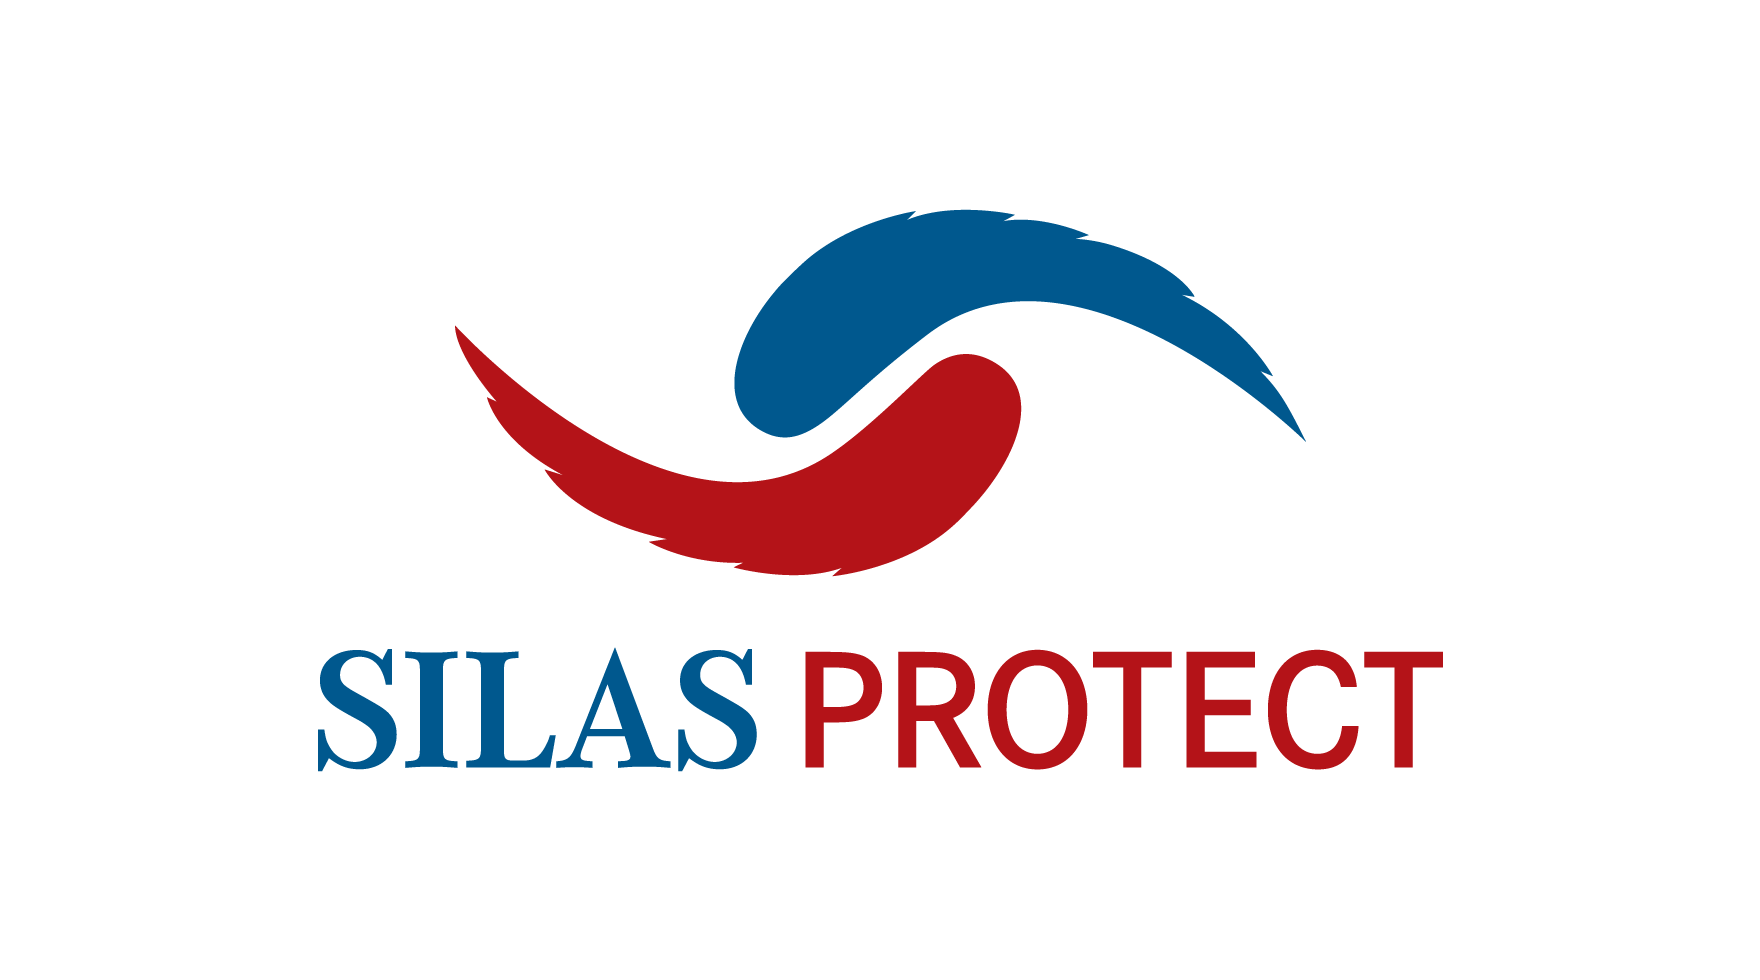 logo-design-silas-protect-by-webkreation